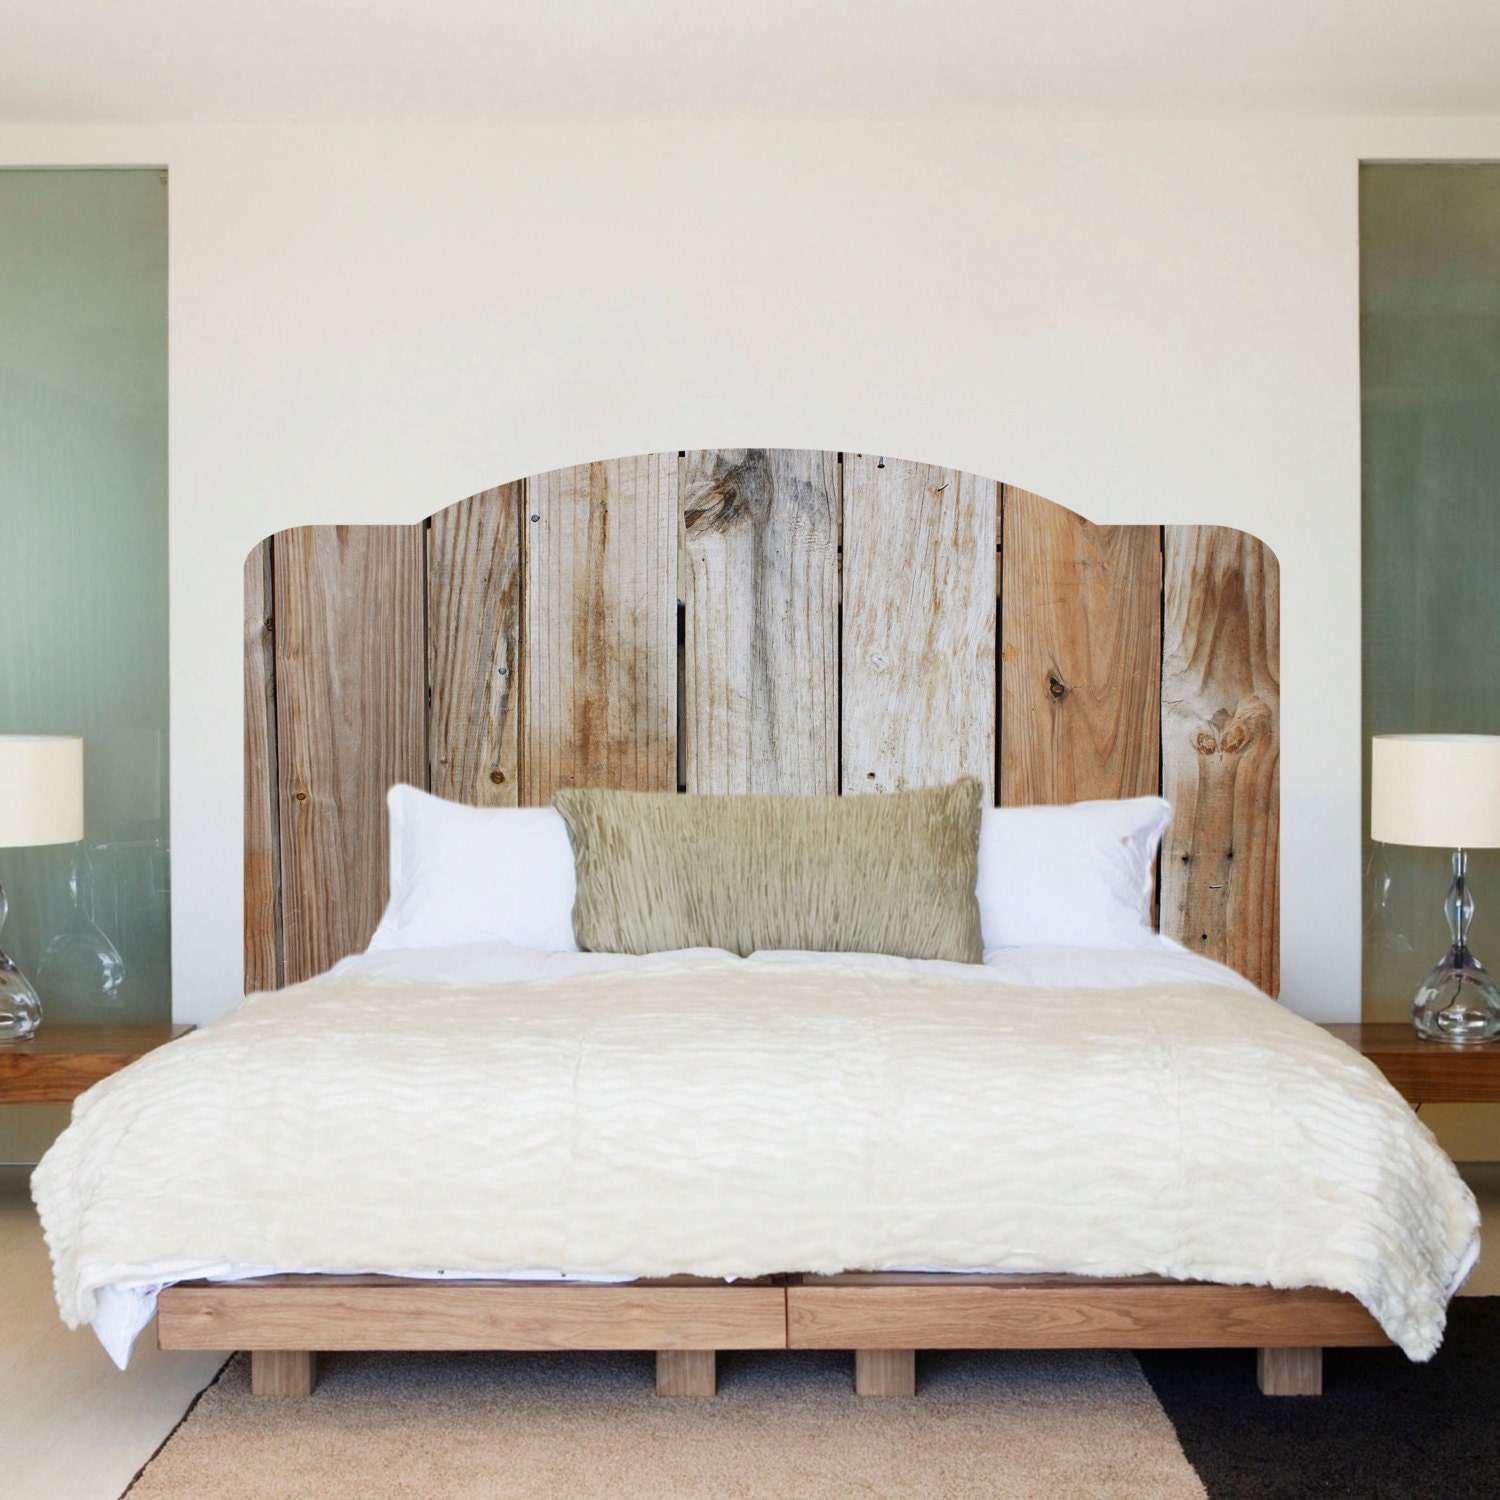 Rustic bed headboard -